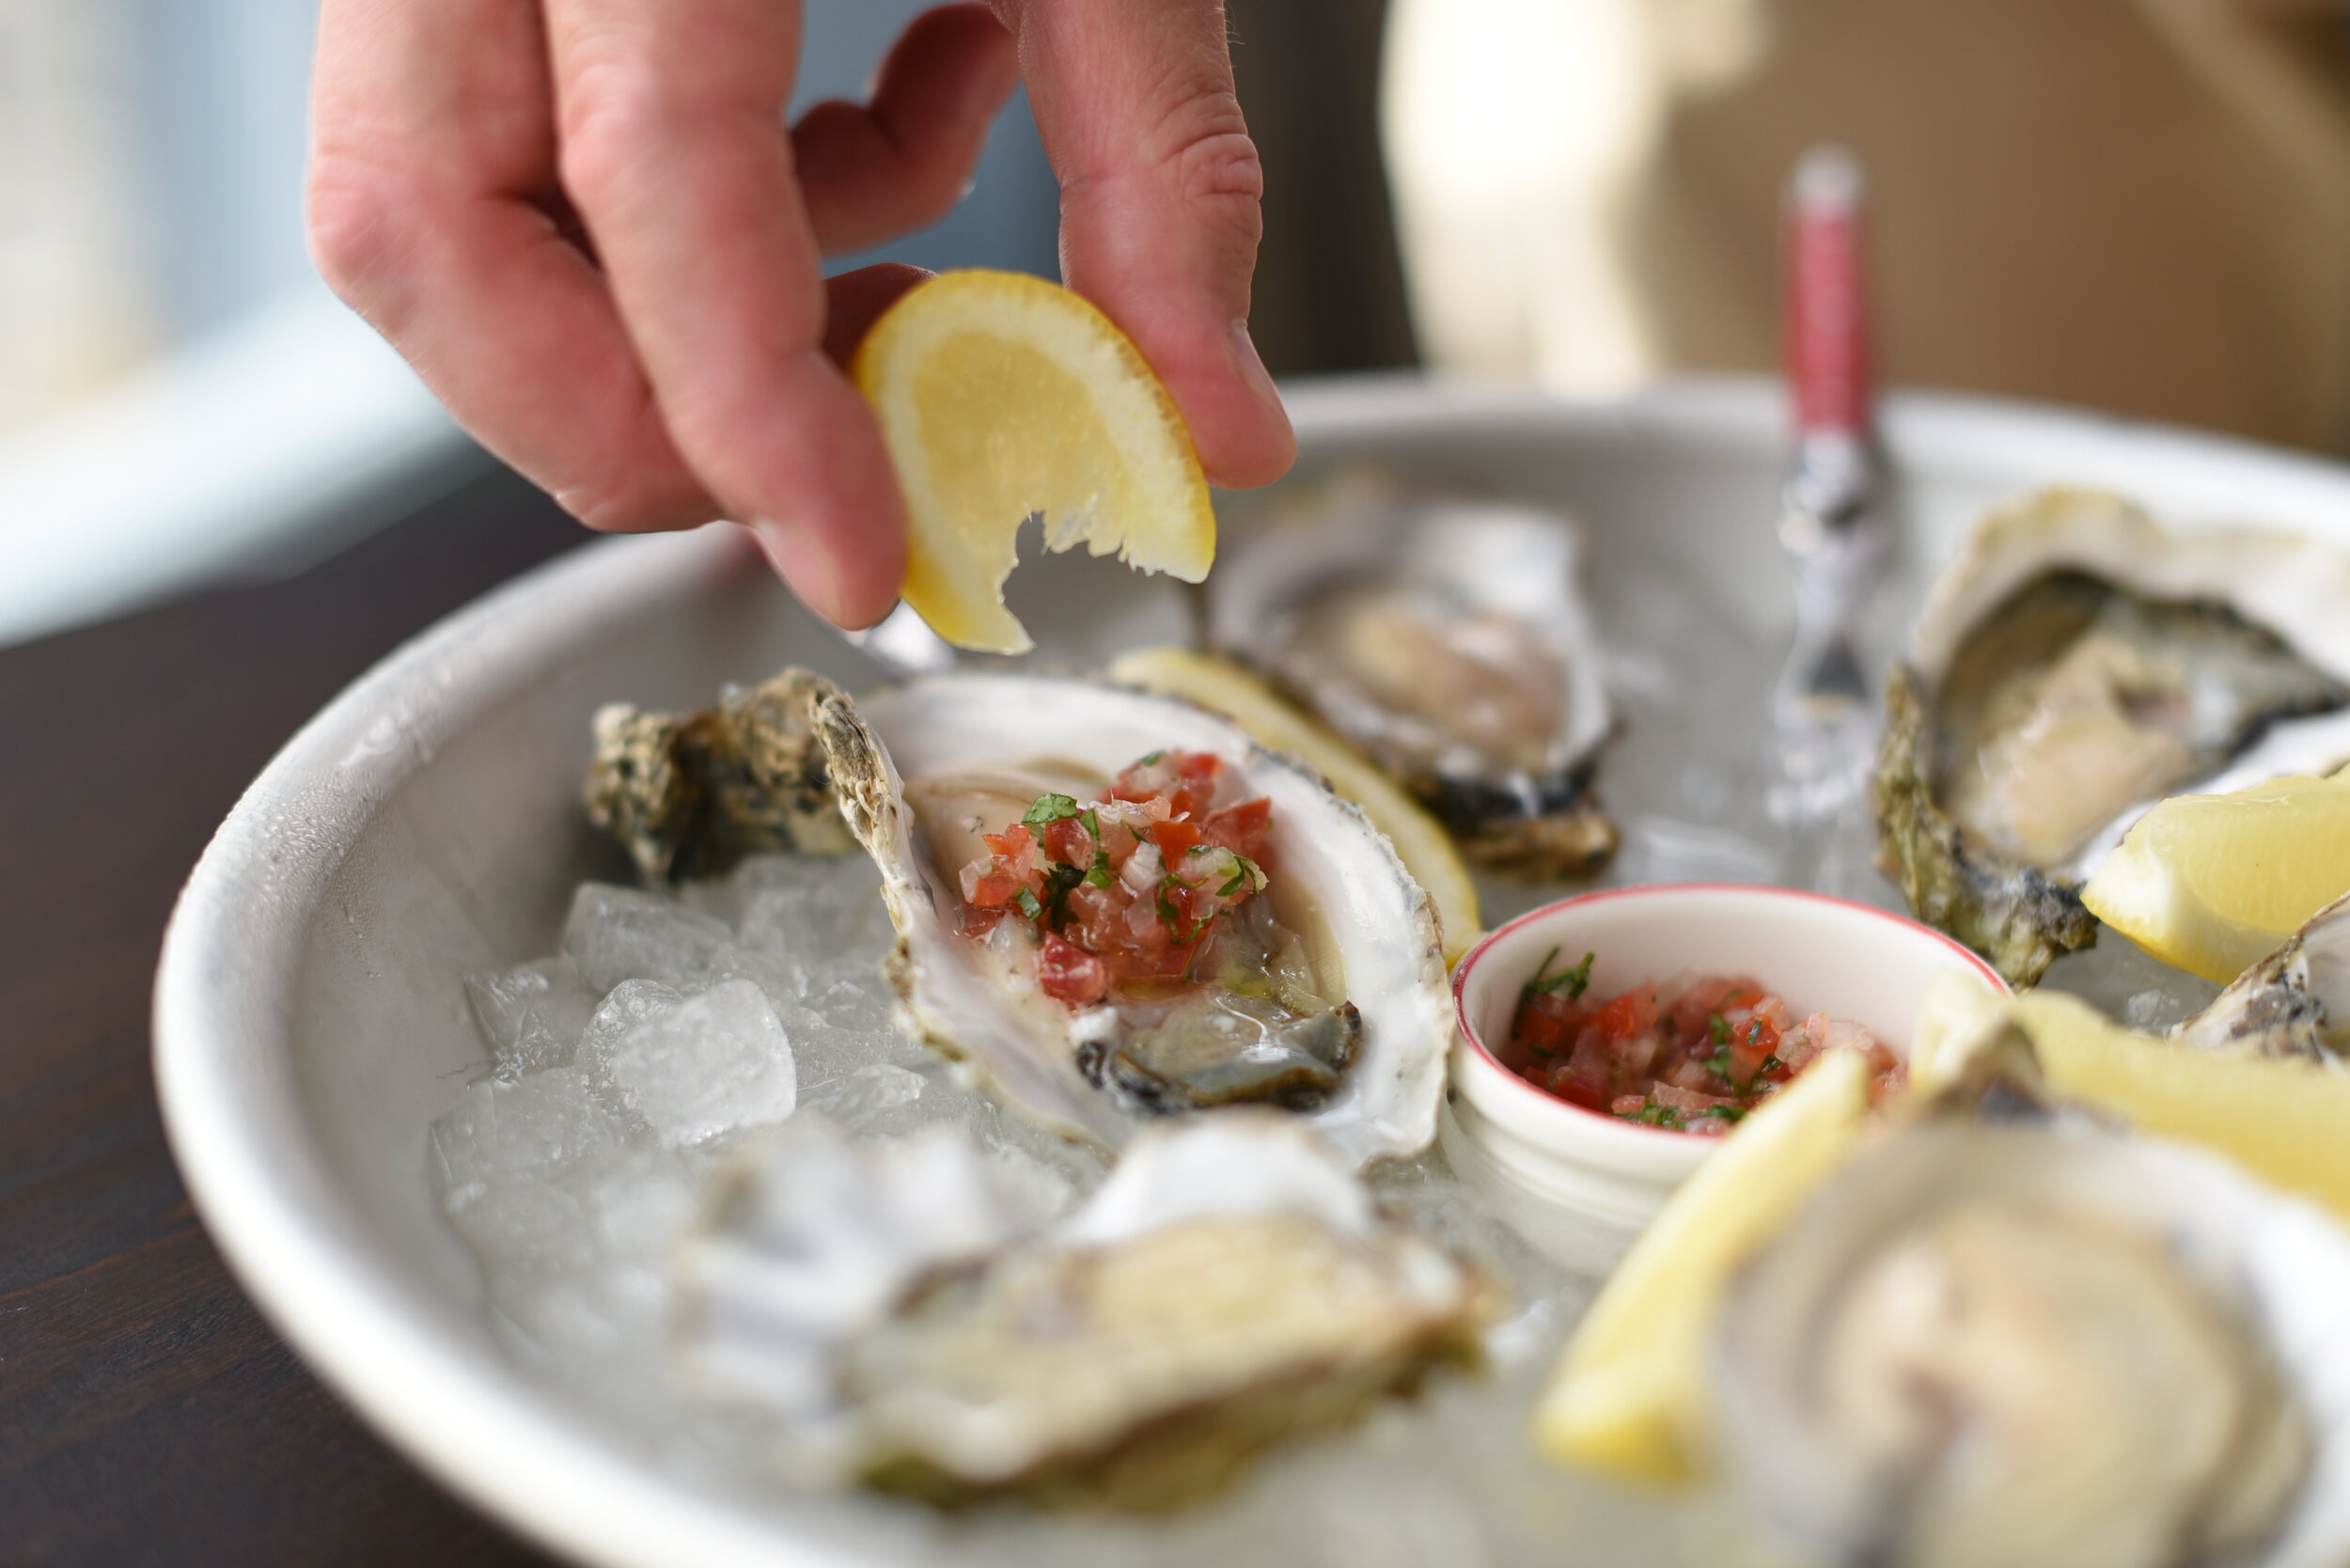 OYSTER HAPPY HOUREVERY WEEKDAY FROM 4-6PM - £1 each with purchase of a glass or bottle of wine! As our American counterparts say